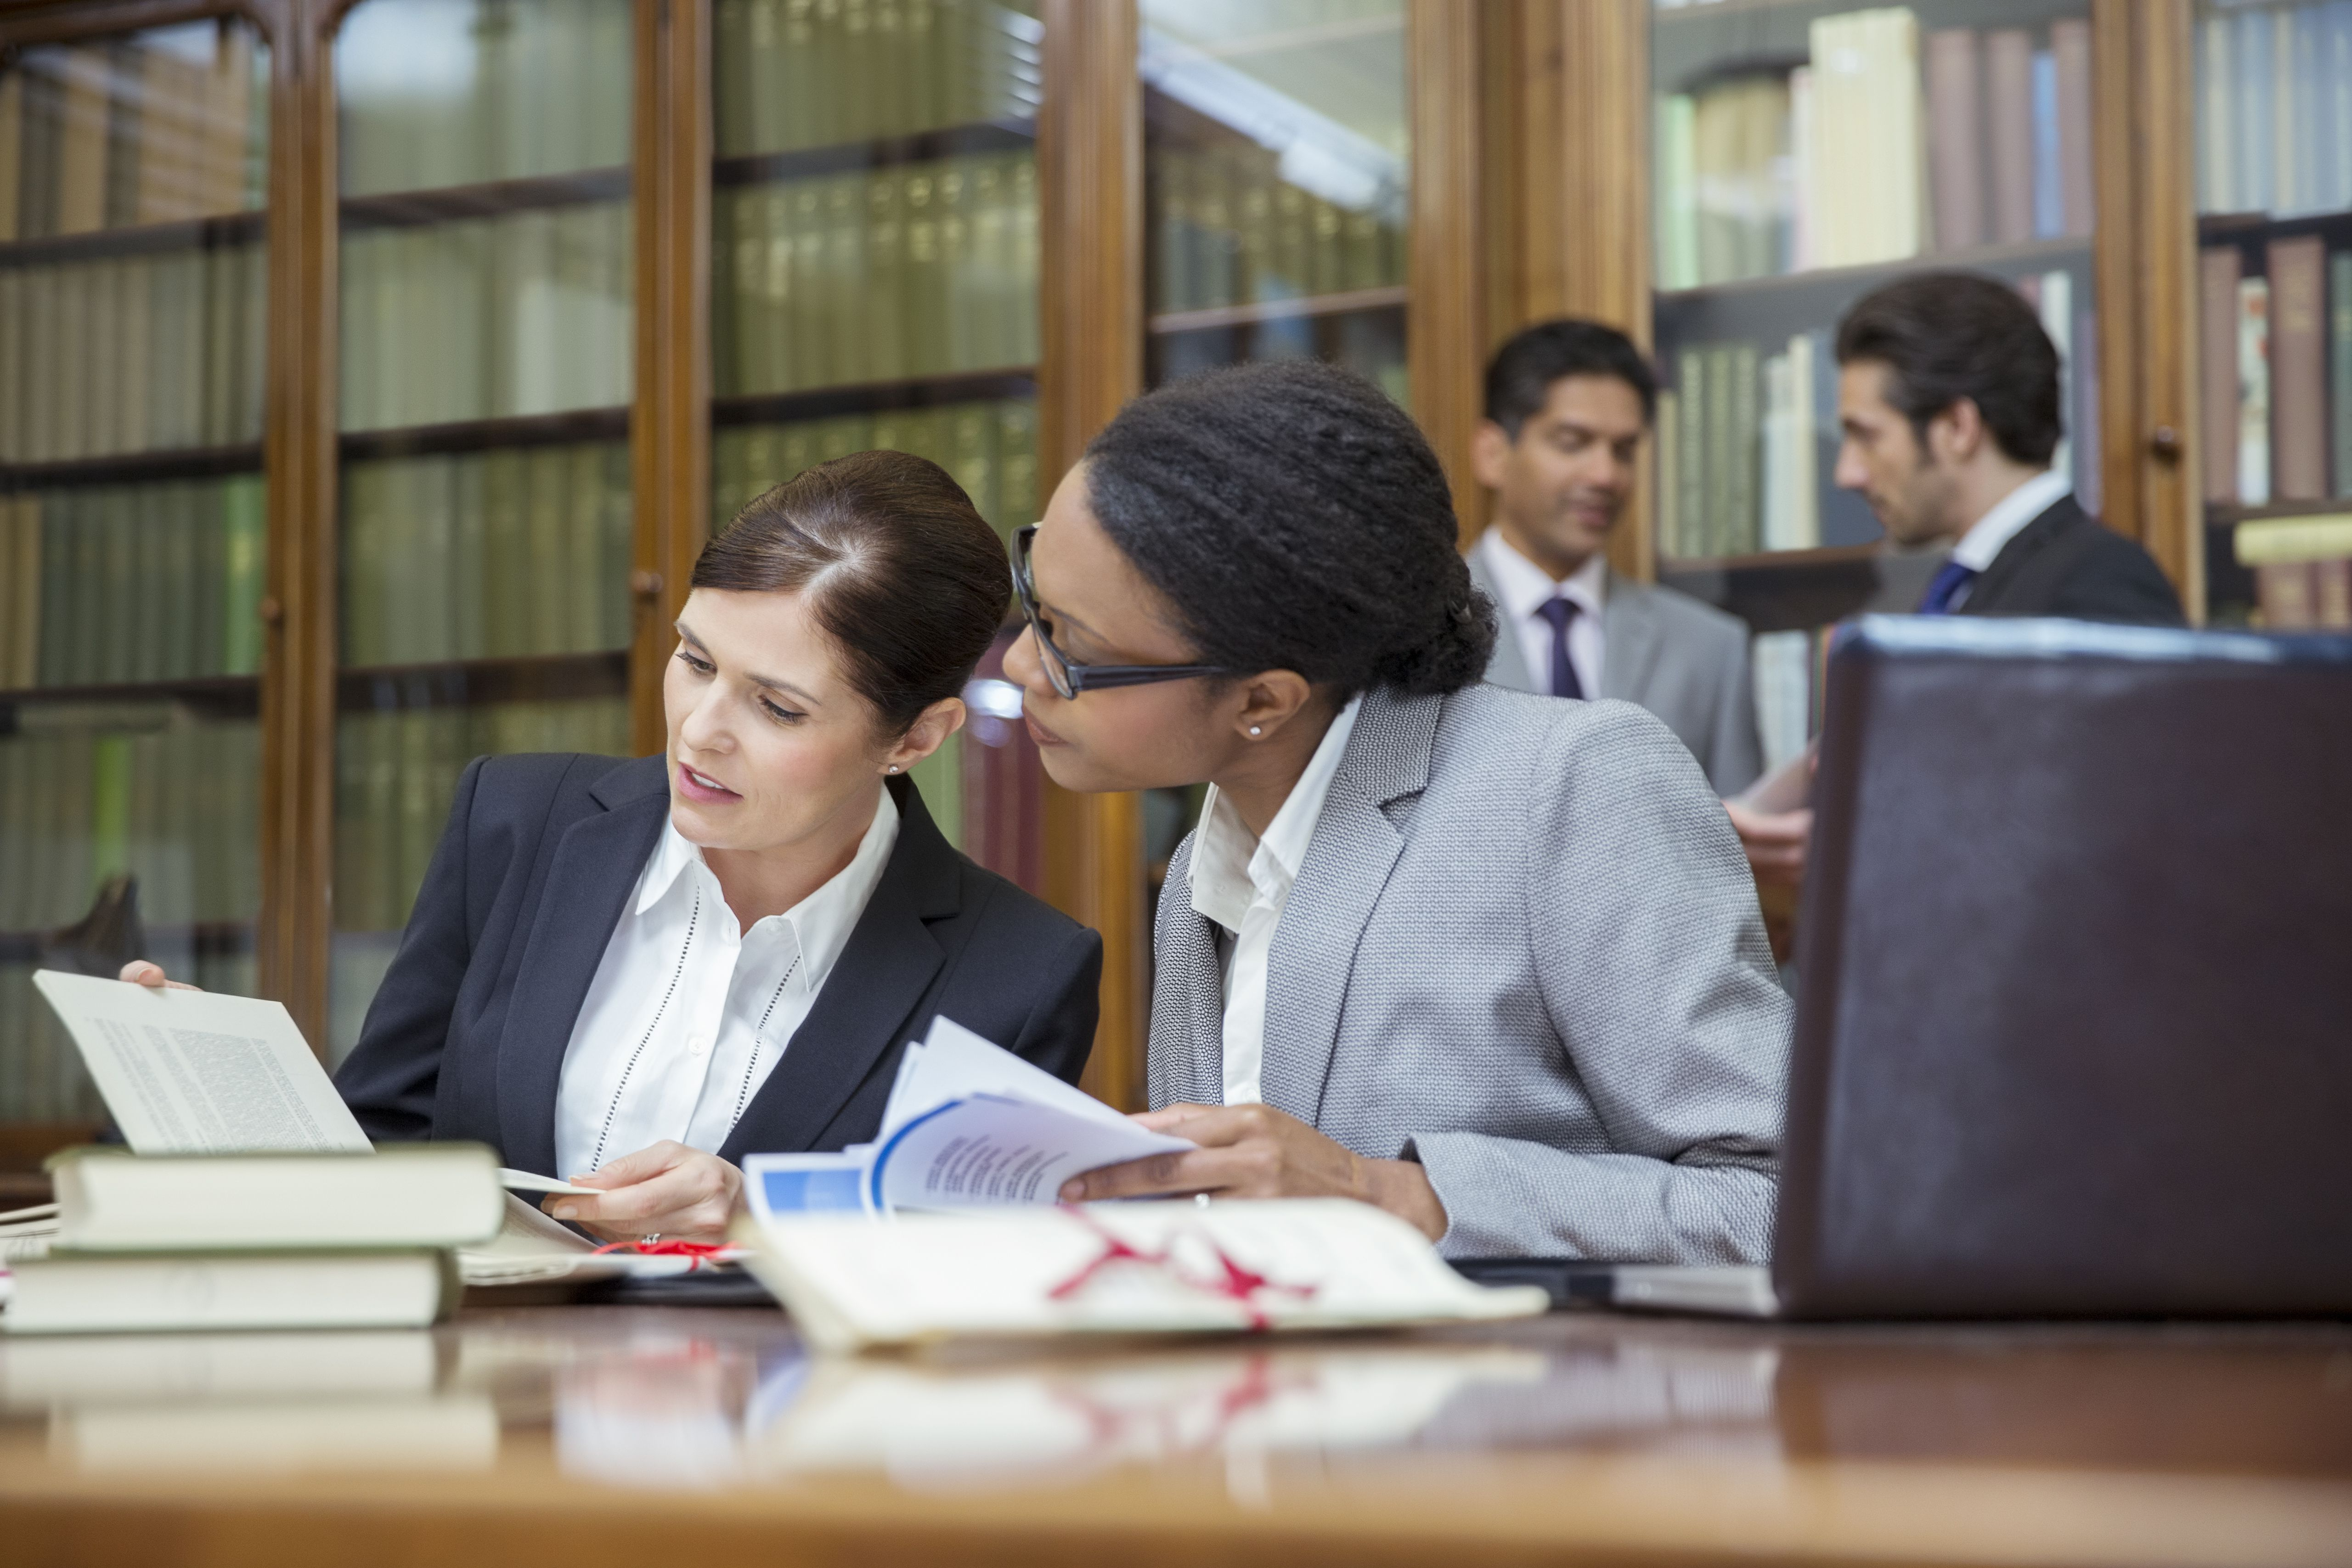 Attorneys in law library